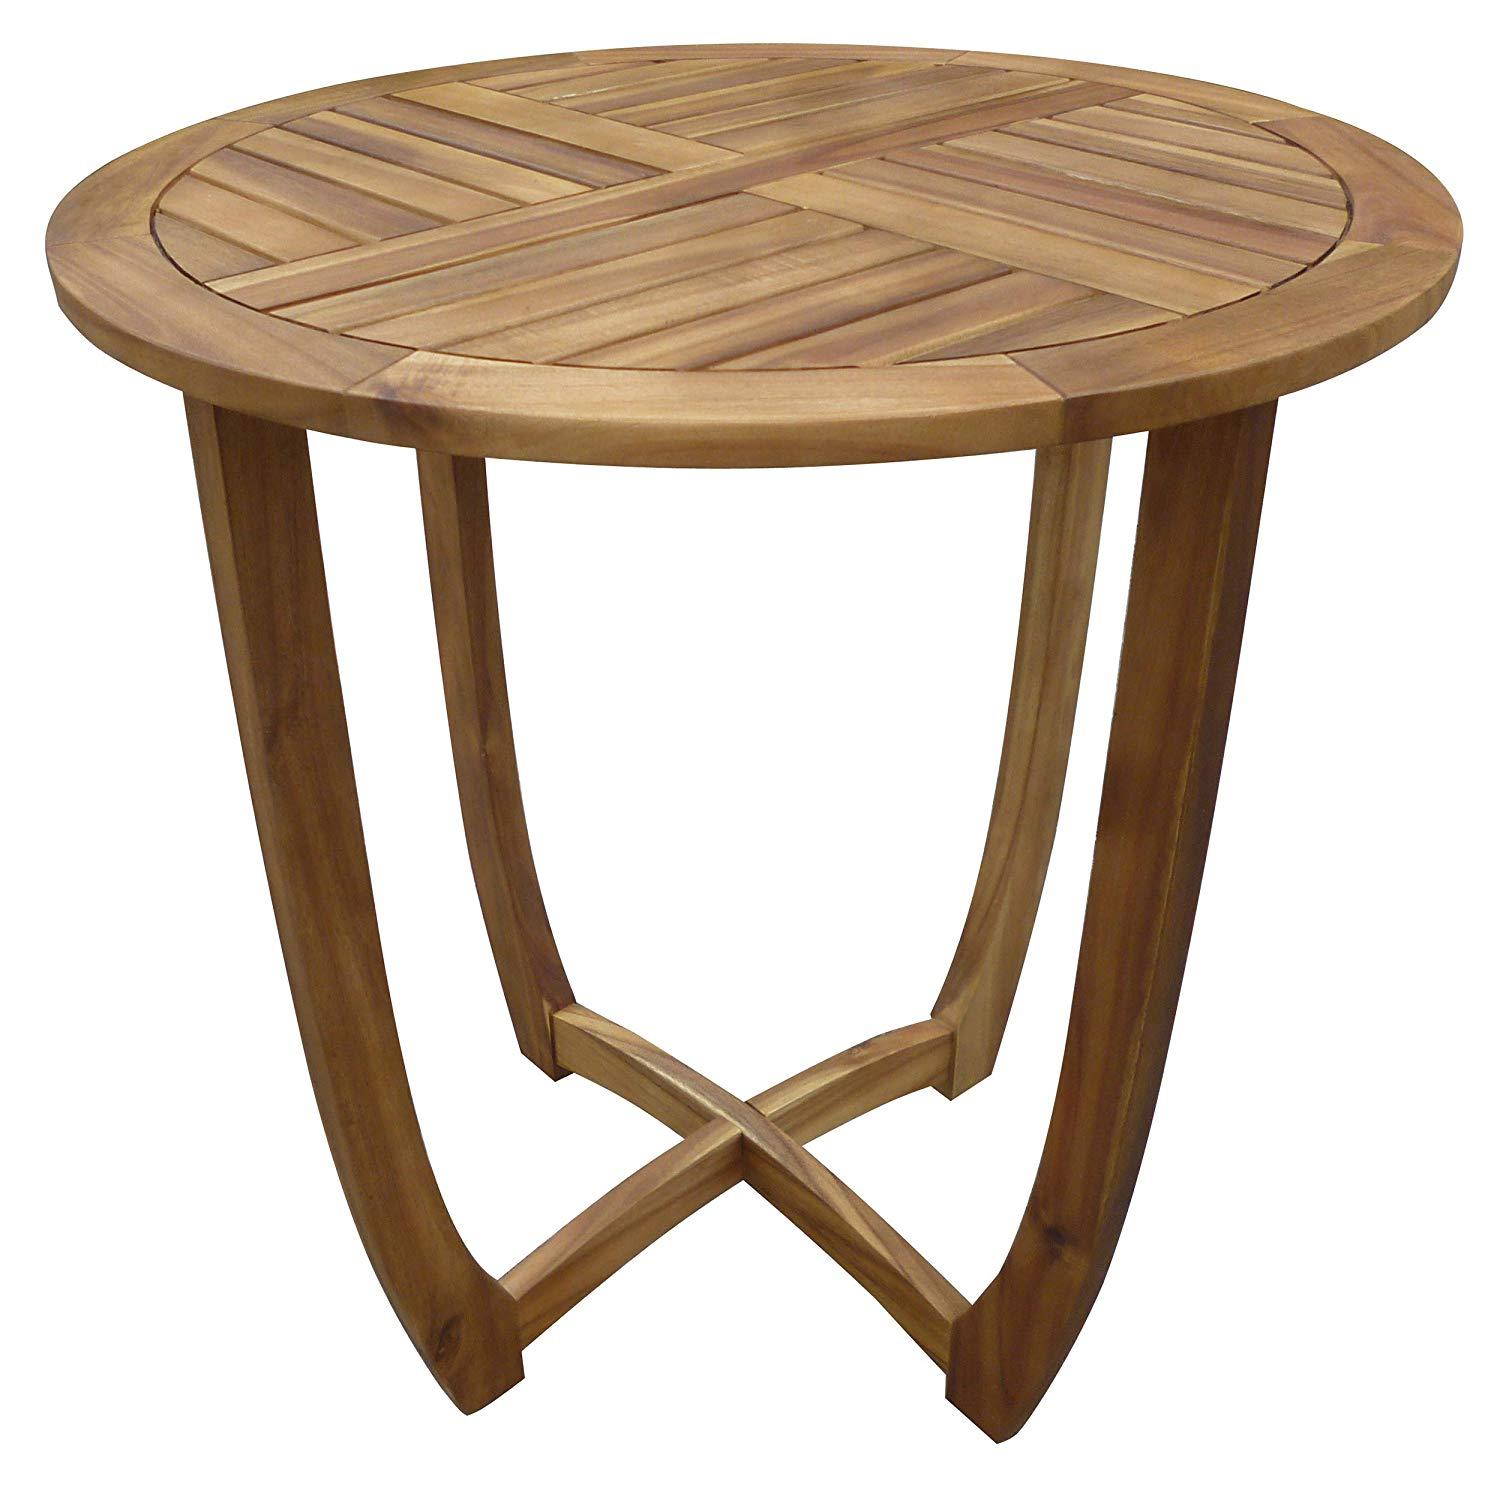 great furniture navarro round wood outdoor teak accent table perfect for patio with finish garden contemporary edmonton boys bedroom white tablecloth threshold and metal lamp